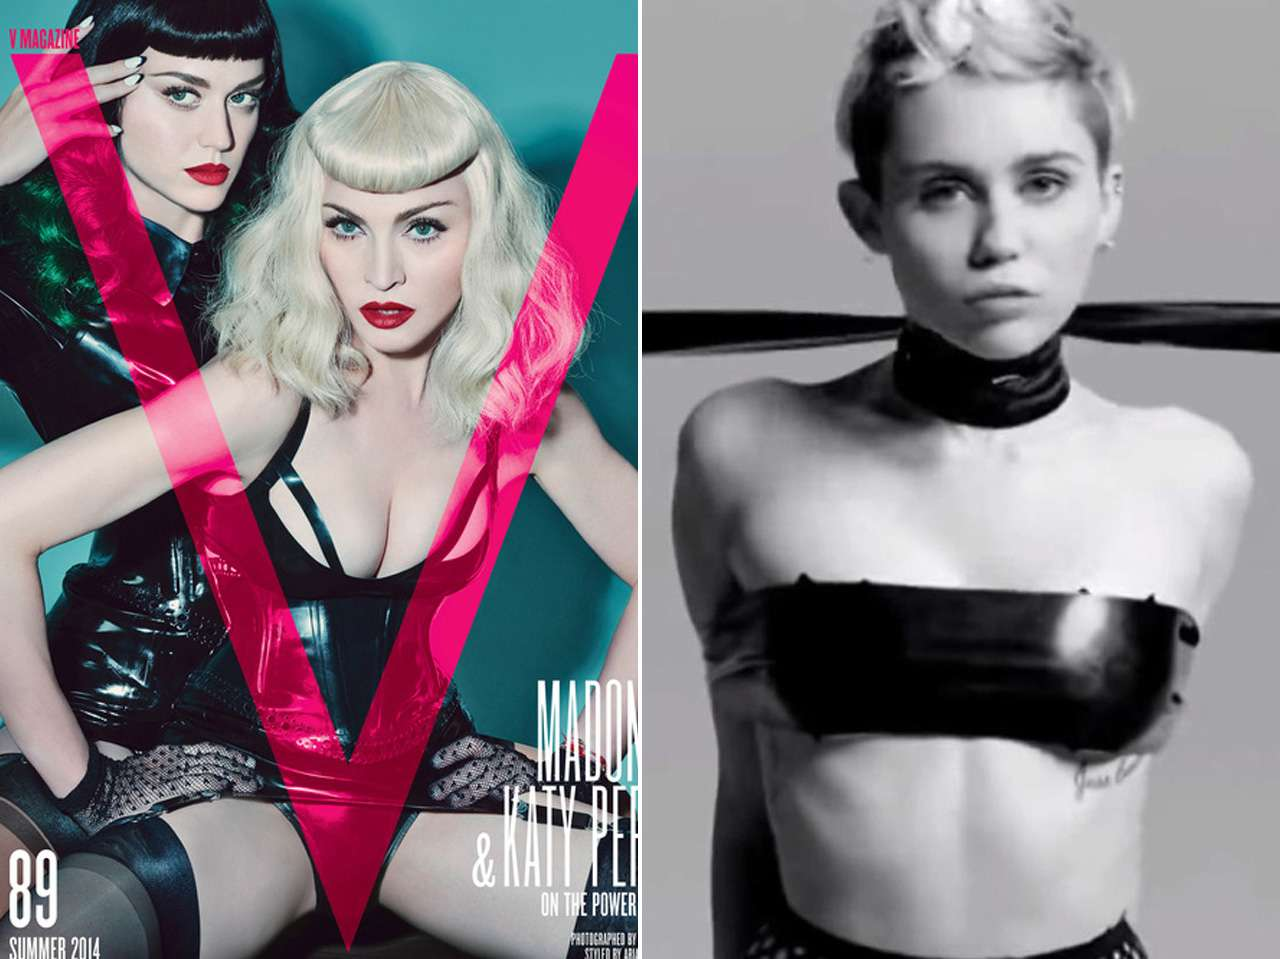 Katy Perry, Madonna y Miley Cyrus. Foto: V Magazine / You Tube